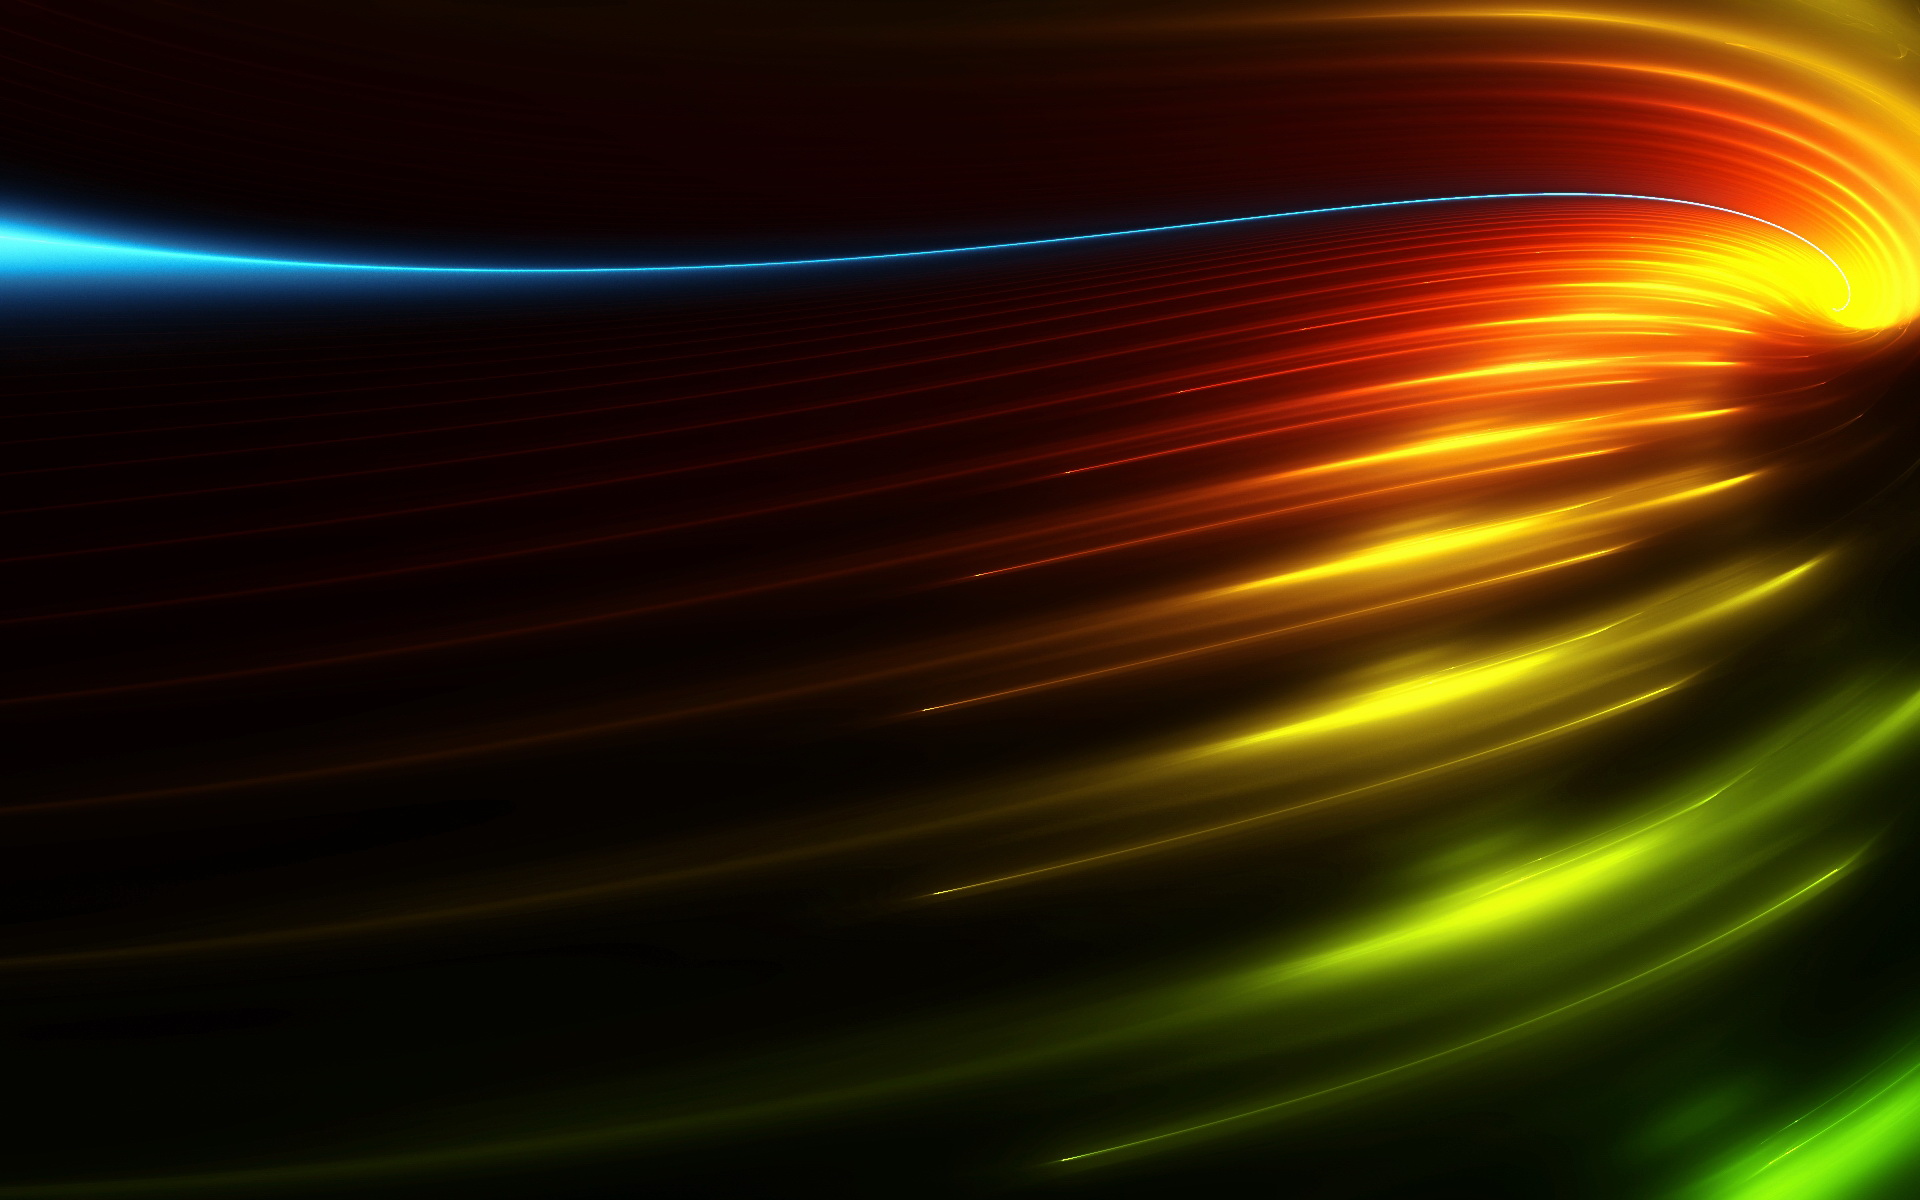 Abstract 3d Widescreen Hd Wallpaper 1366×768 Wallpaper